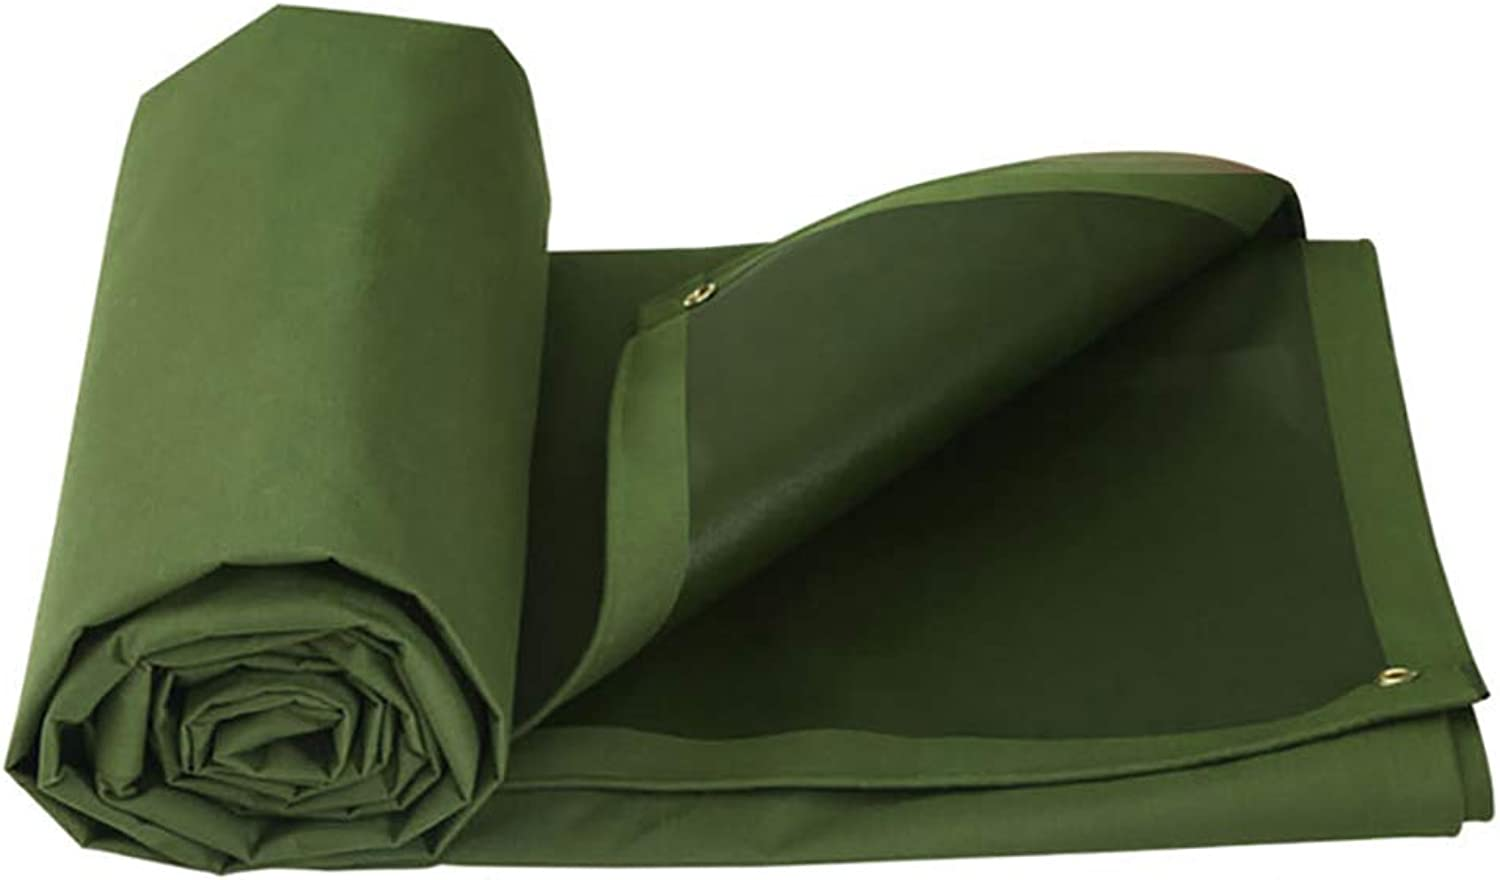 Tarpaulin Heavy Duty Tarp Canvas Waterproof,Army Green MultiUse Ground Tent Cover Multilayered Predection for Outdoor Camping RV Truck and Trailers,660G M2 LBHQF (Size   5m×4m)